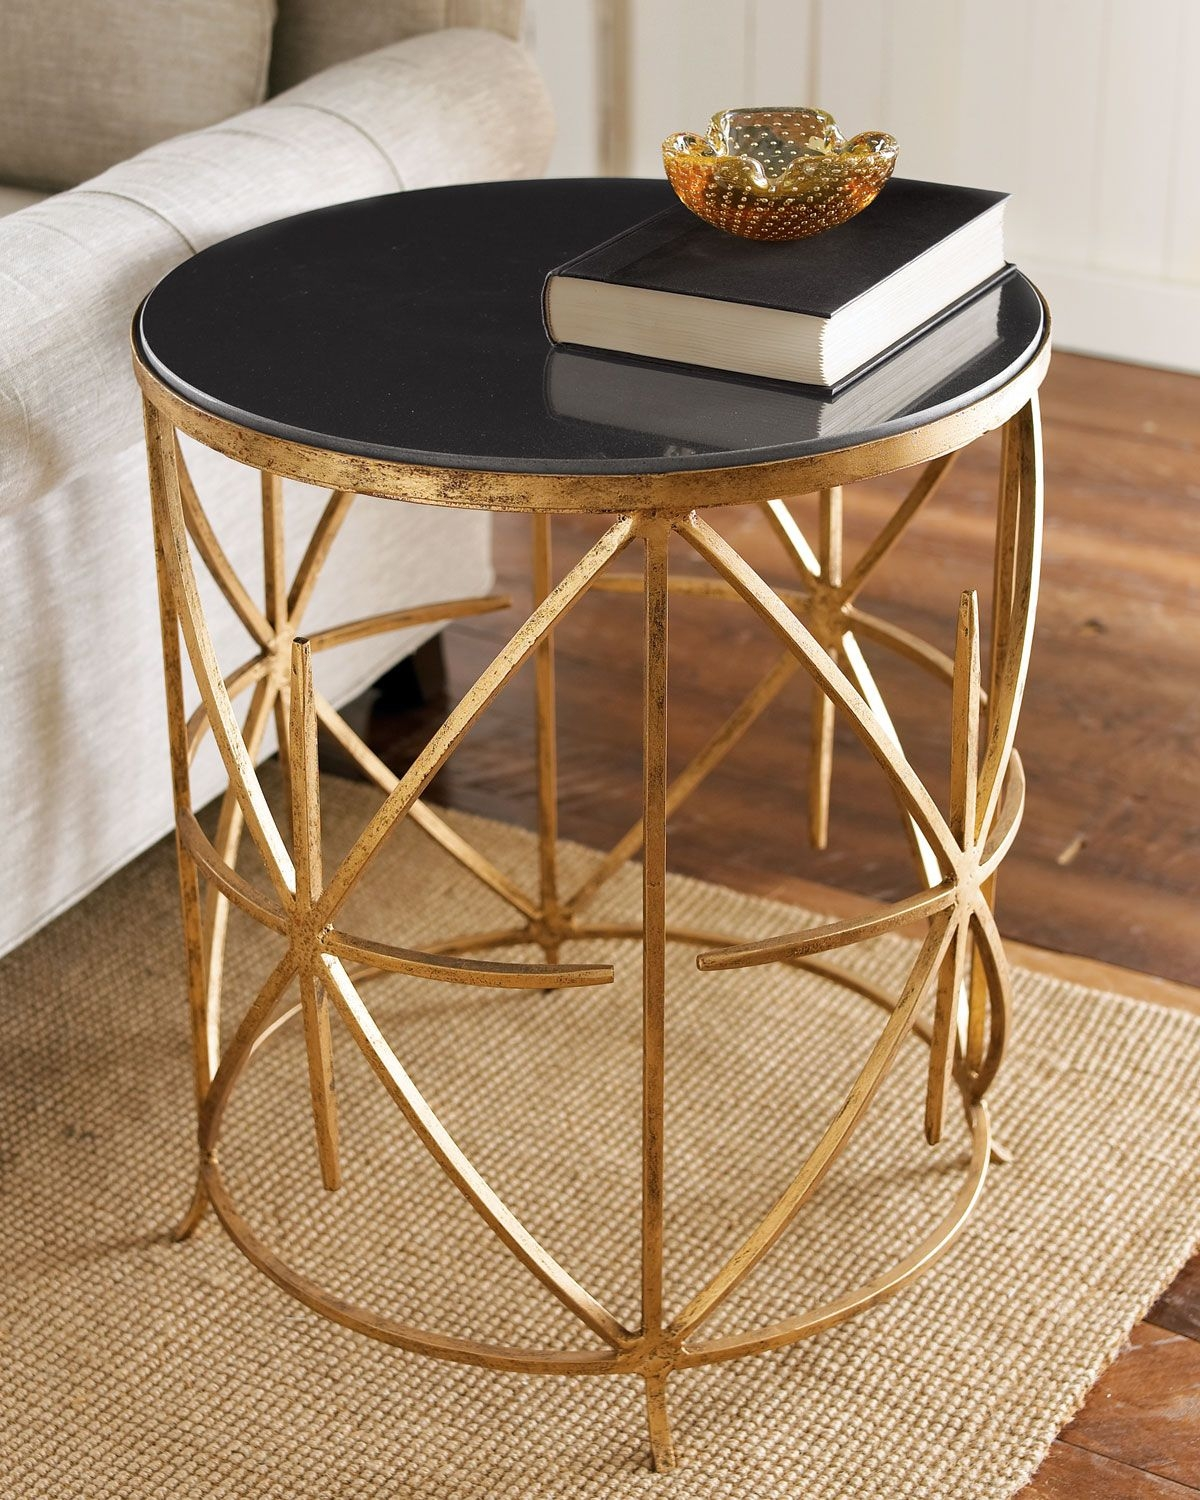 Incroyable Small Marble Top Table